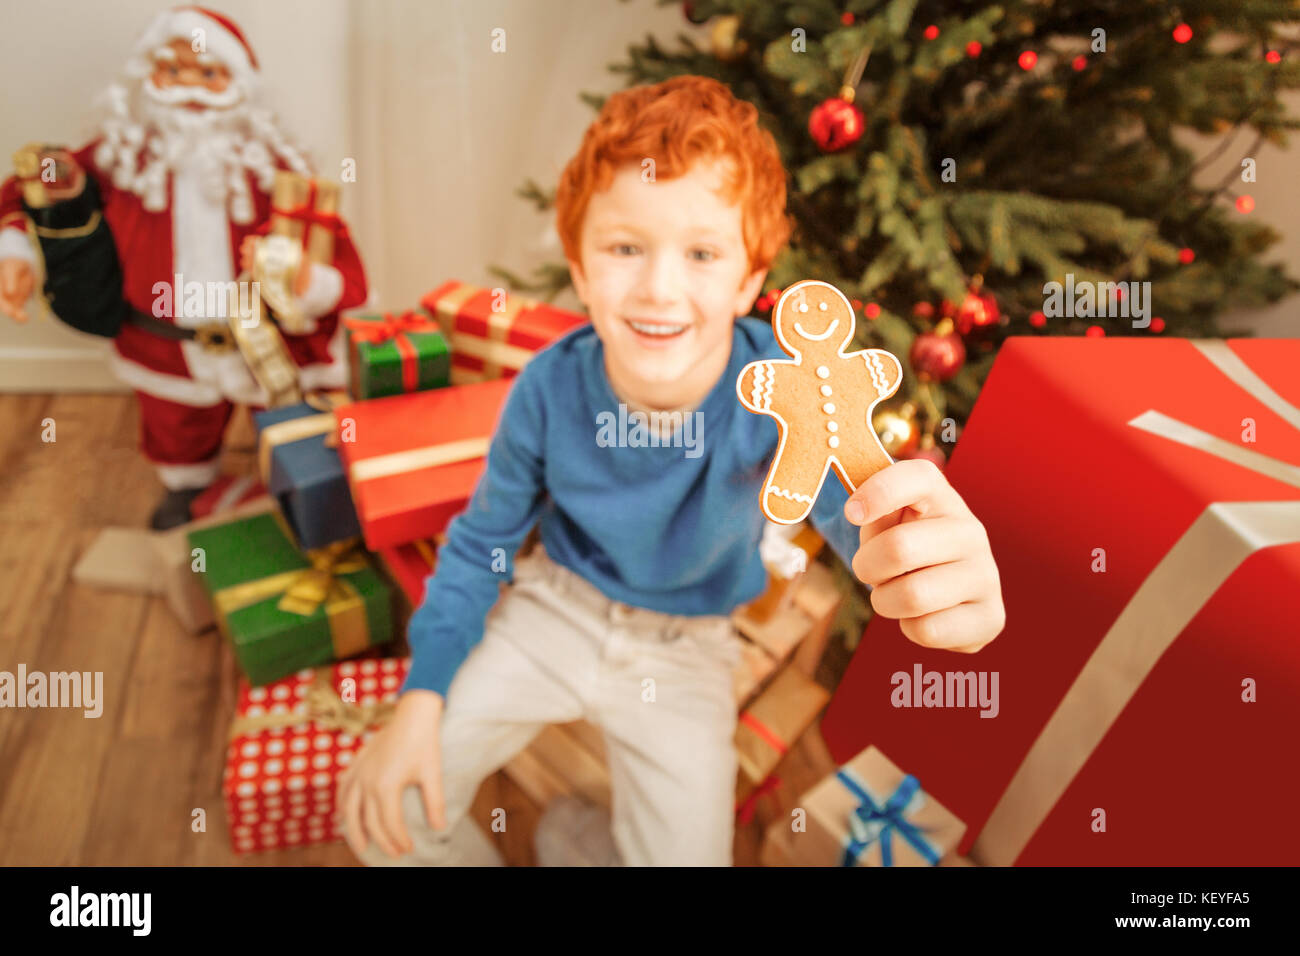 Emotional preteen boy showing gingerbread man into camera - Stock Image